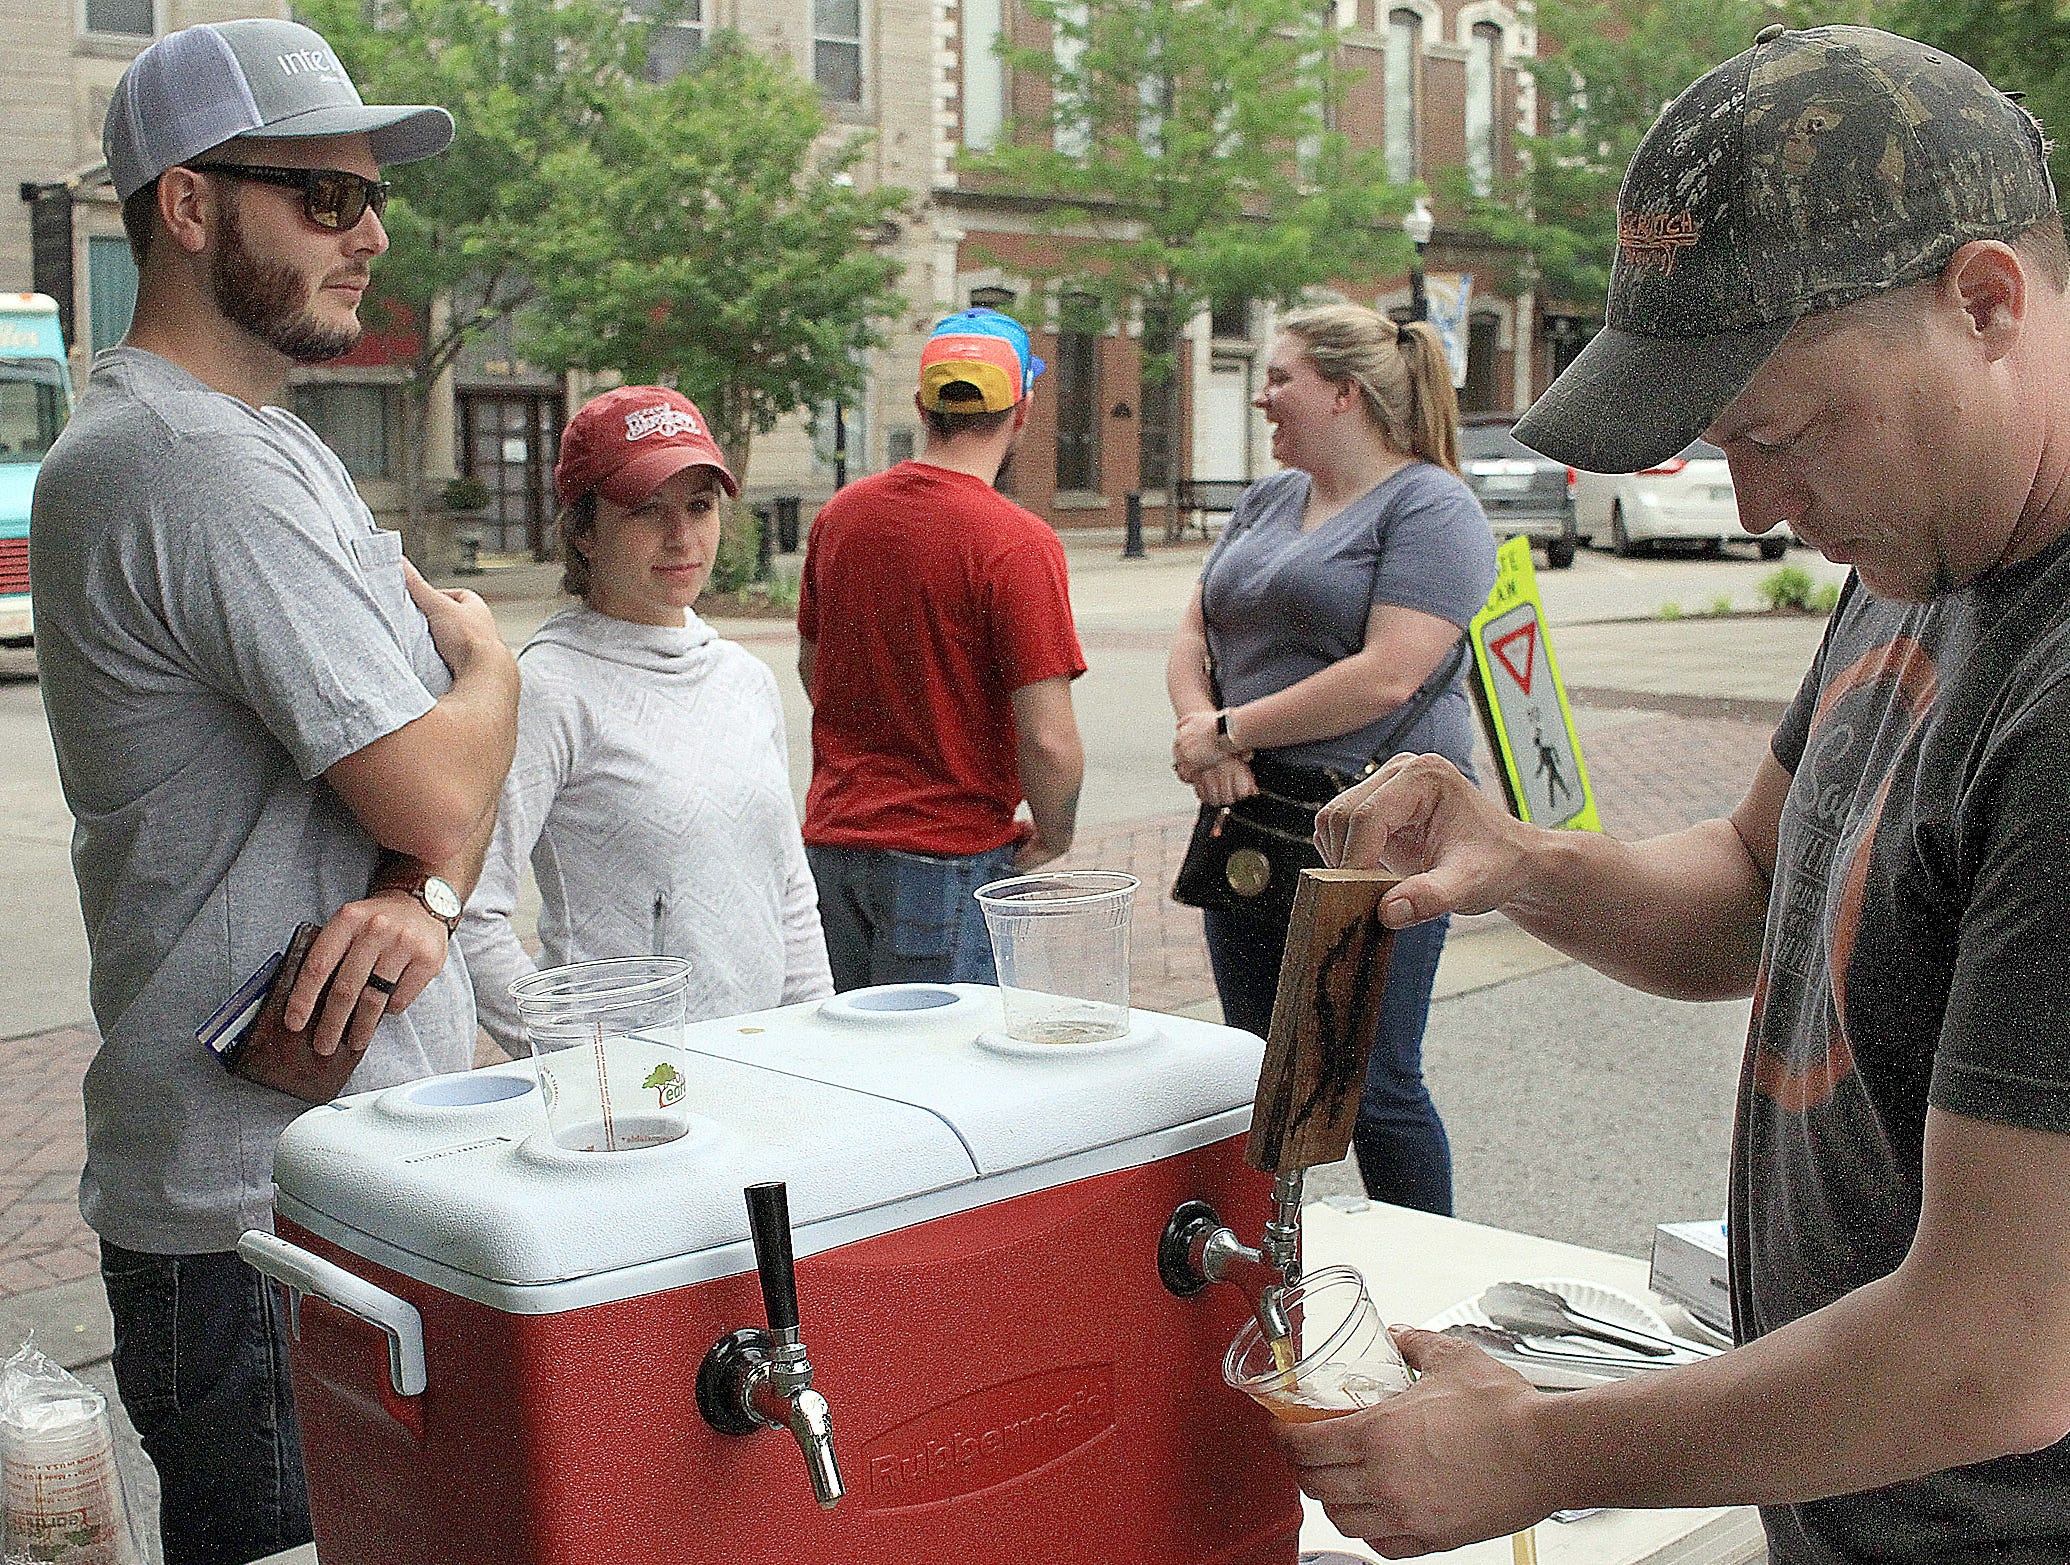 Brad Singleton from Filly's pours beers for Trent and Angelica Williams at the Fashion Crawl in Gallatin, TN on Saturday, May 11, 2019.